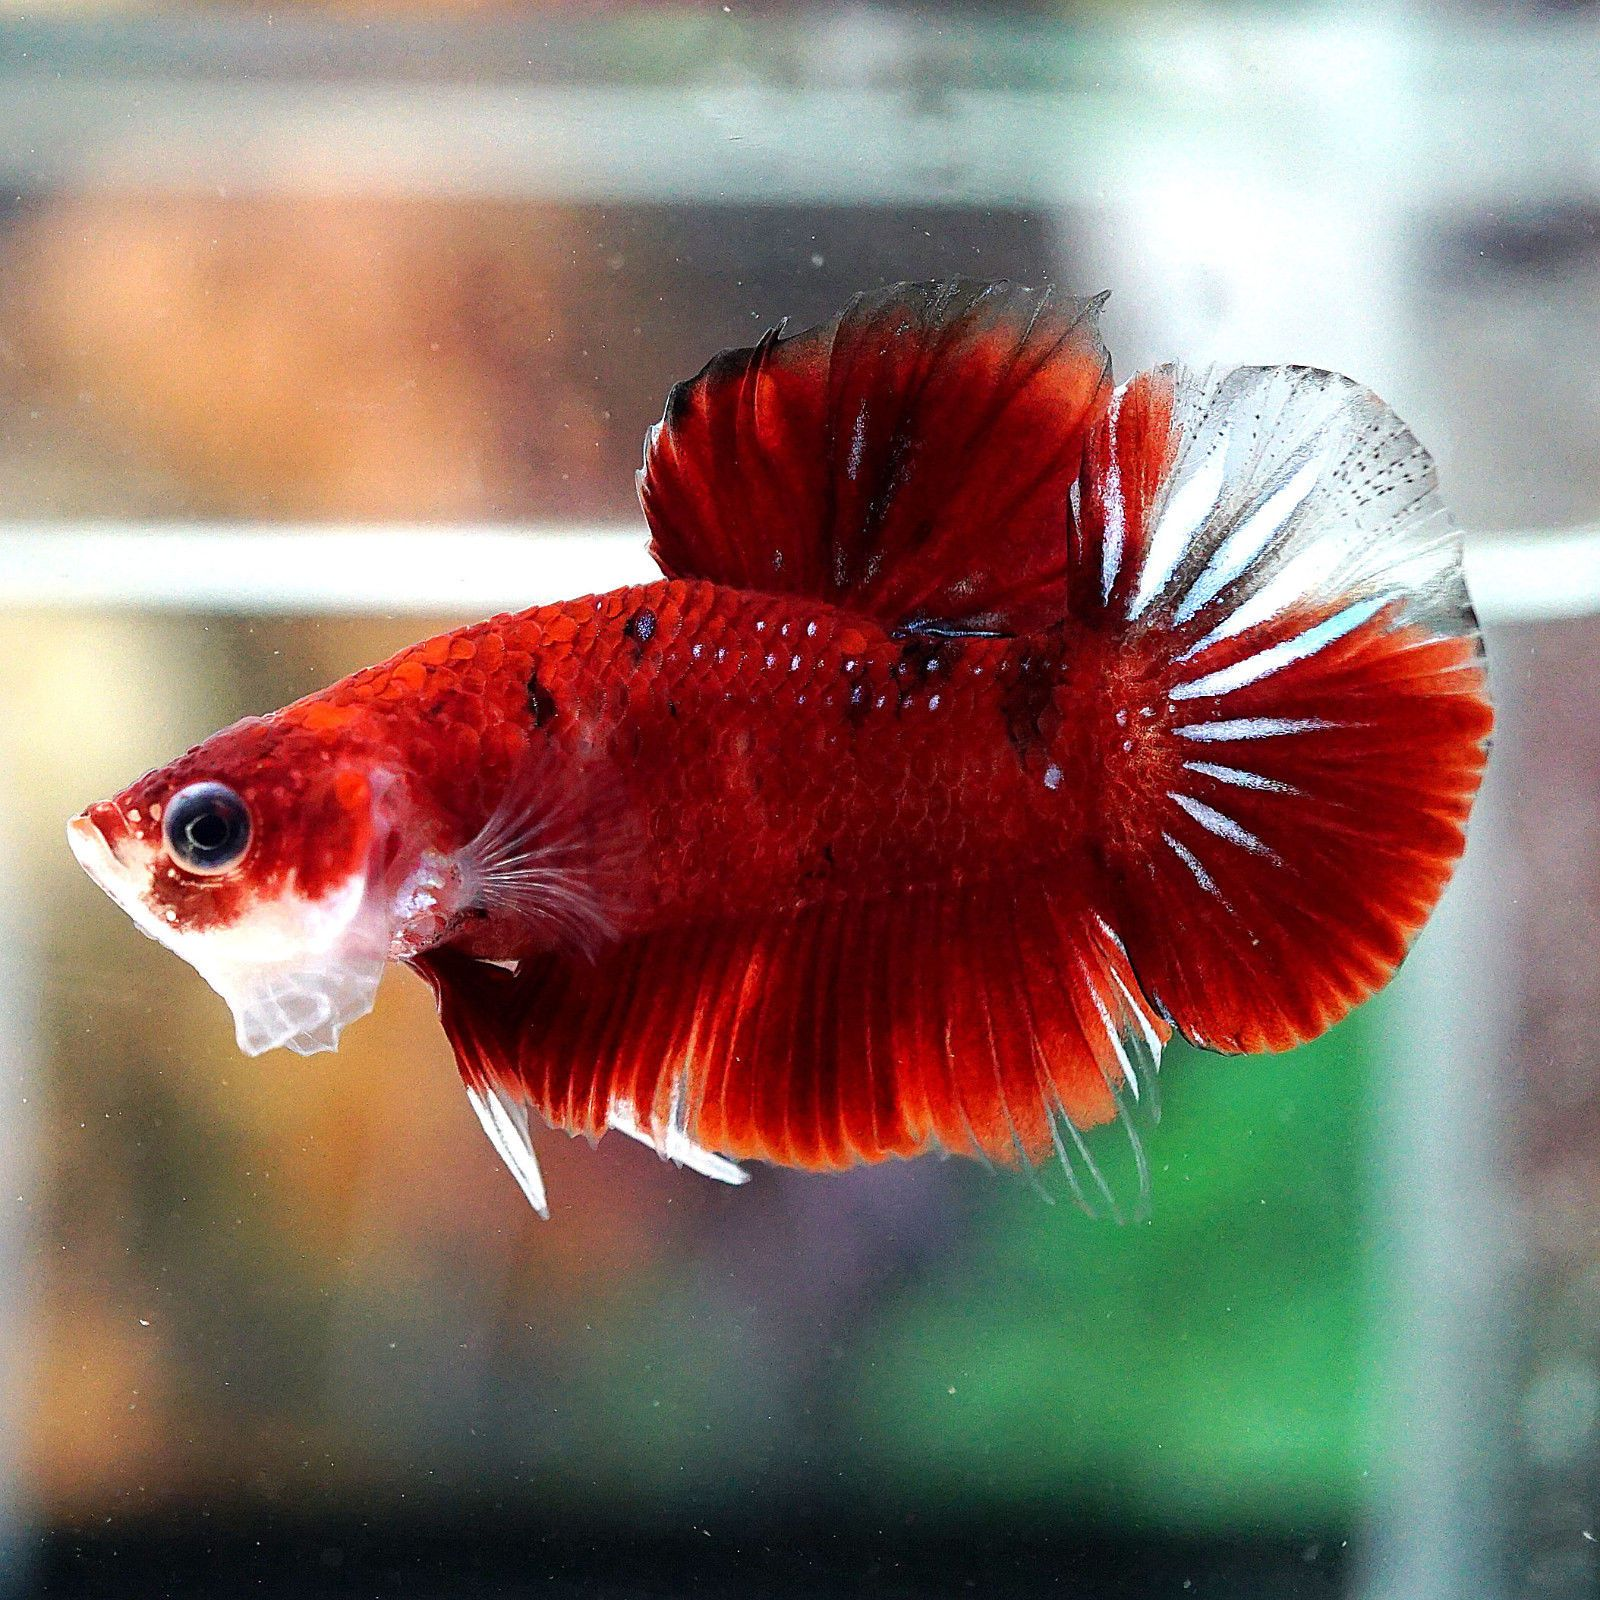 Related image | ปลากัด | Pinterest | Siamese fighting fish, Siamese ...